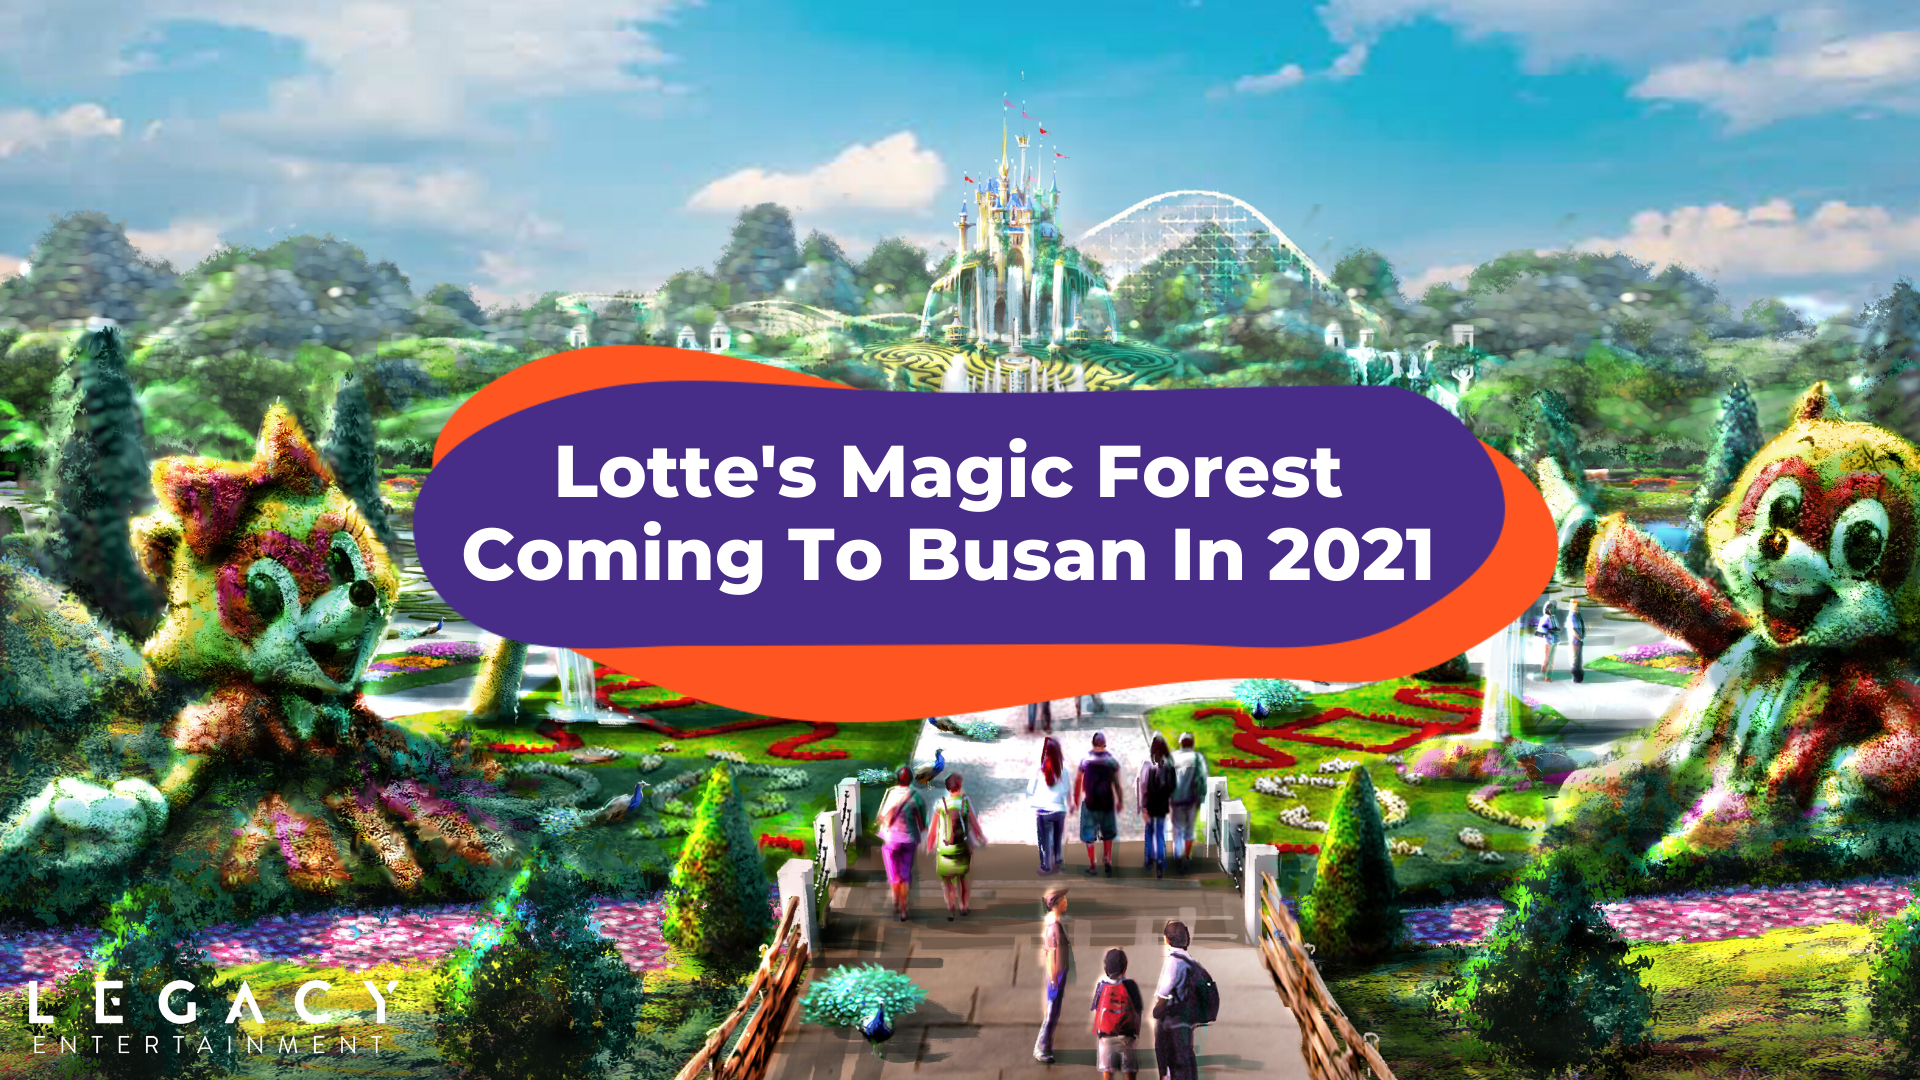 Lotte's Magic Forest In Busan Will Be Asia's First European-Style Theme Park - Scheduled To Open Doors In 2021